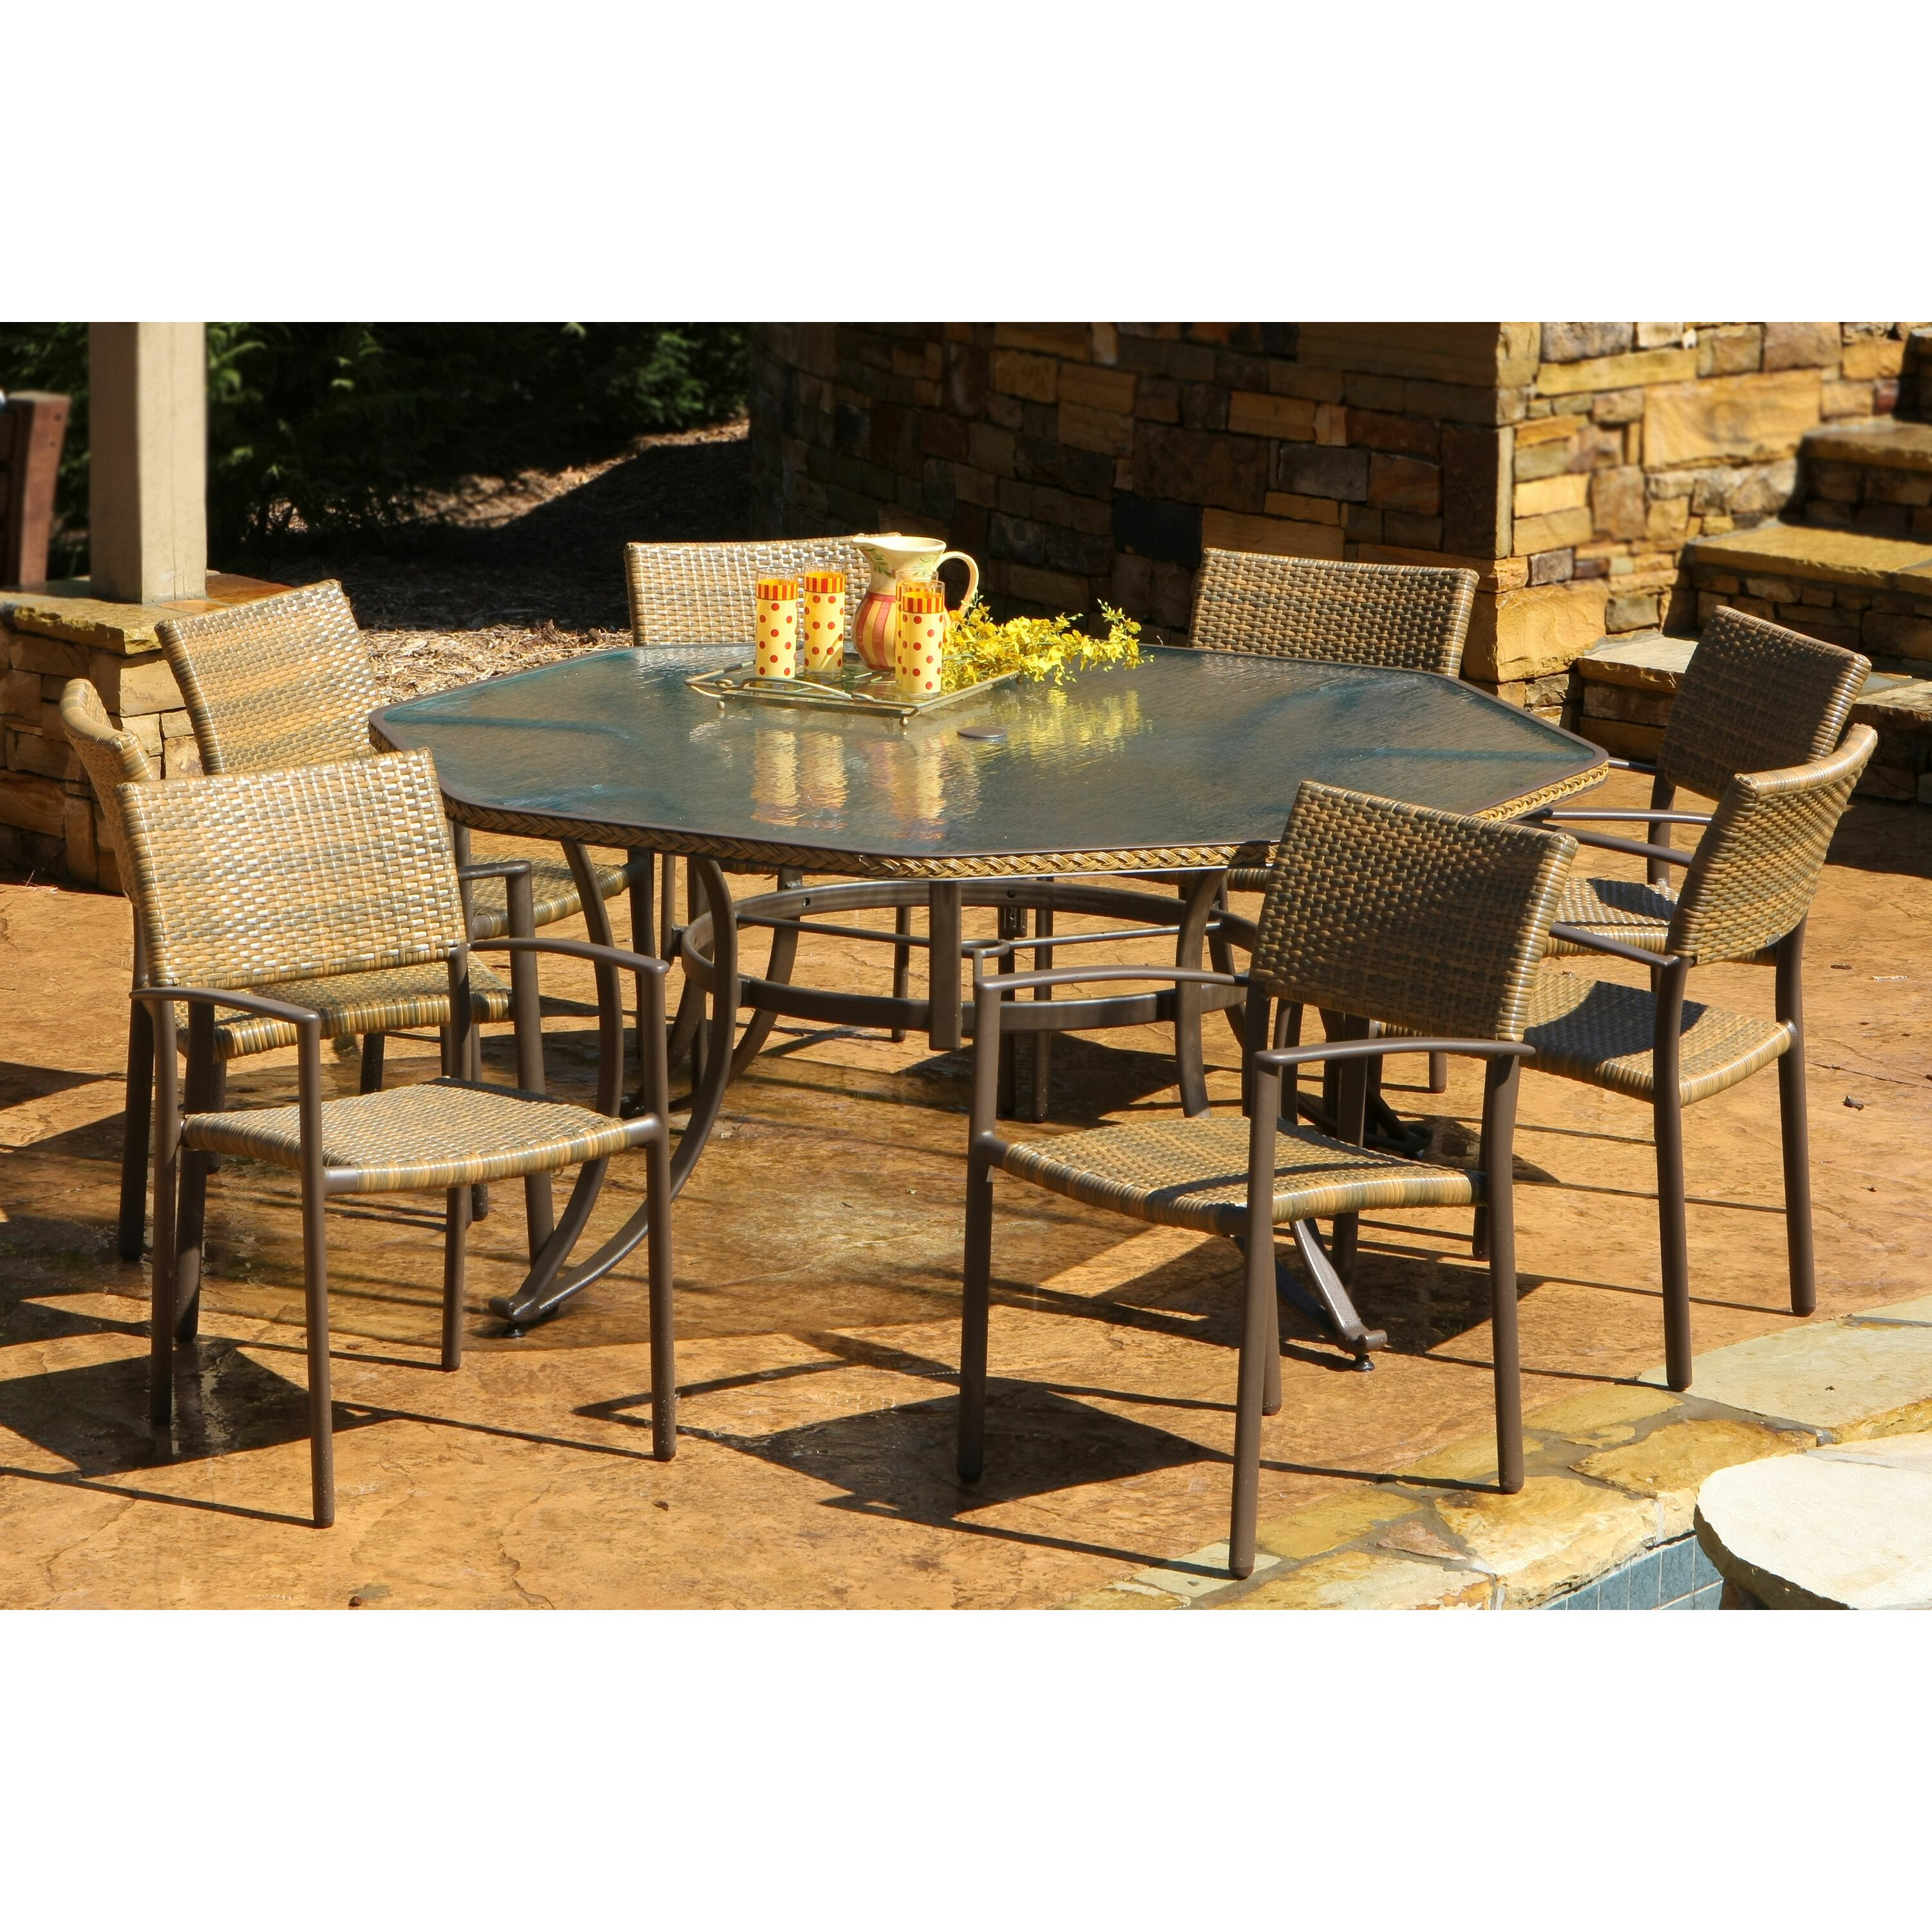 Eight Person Patio Dining Sets Darby Home Co SKU: DRBC1529. Full resolution  portrait, nominally Width 3000 Height 3000 pixels, portrait with #B28F19.